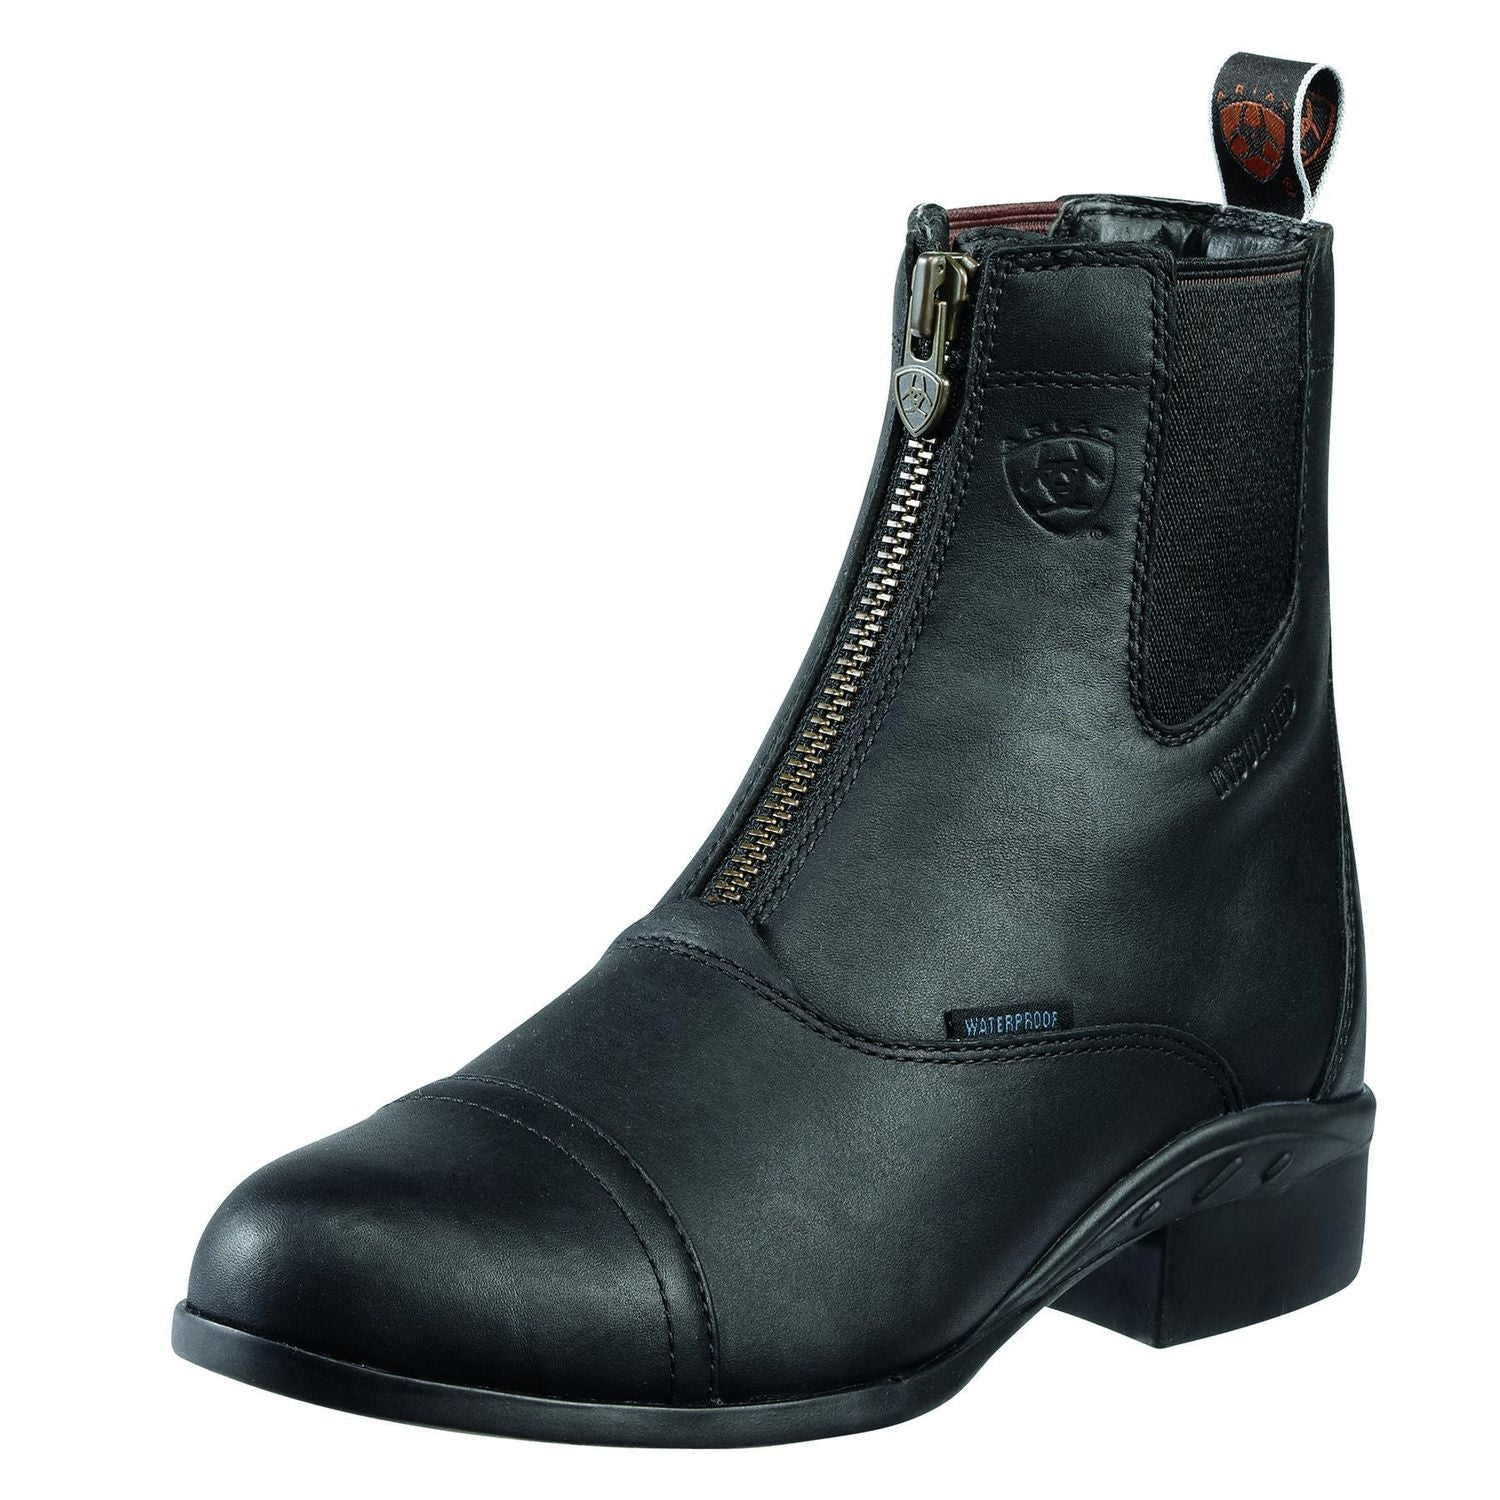 Ariat Heritage III Women's H2O Insulated Zip Paddock Boots - SALE - North Shore Saddlery